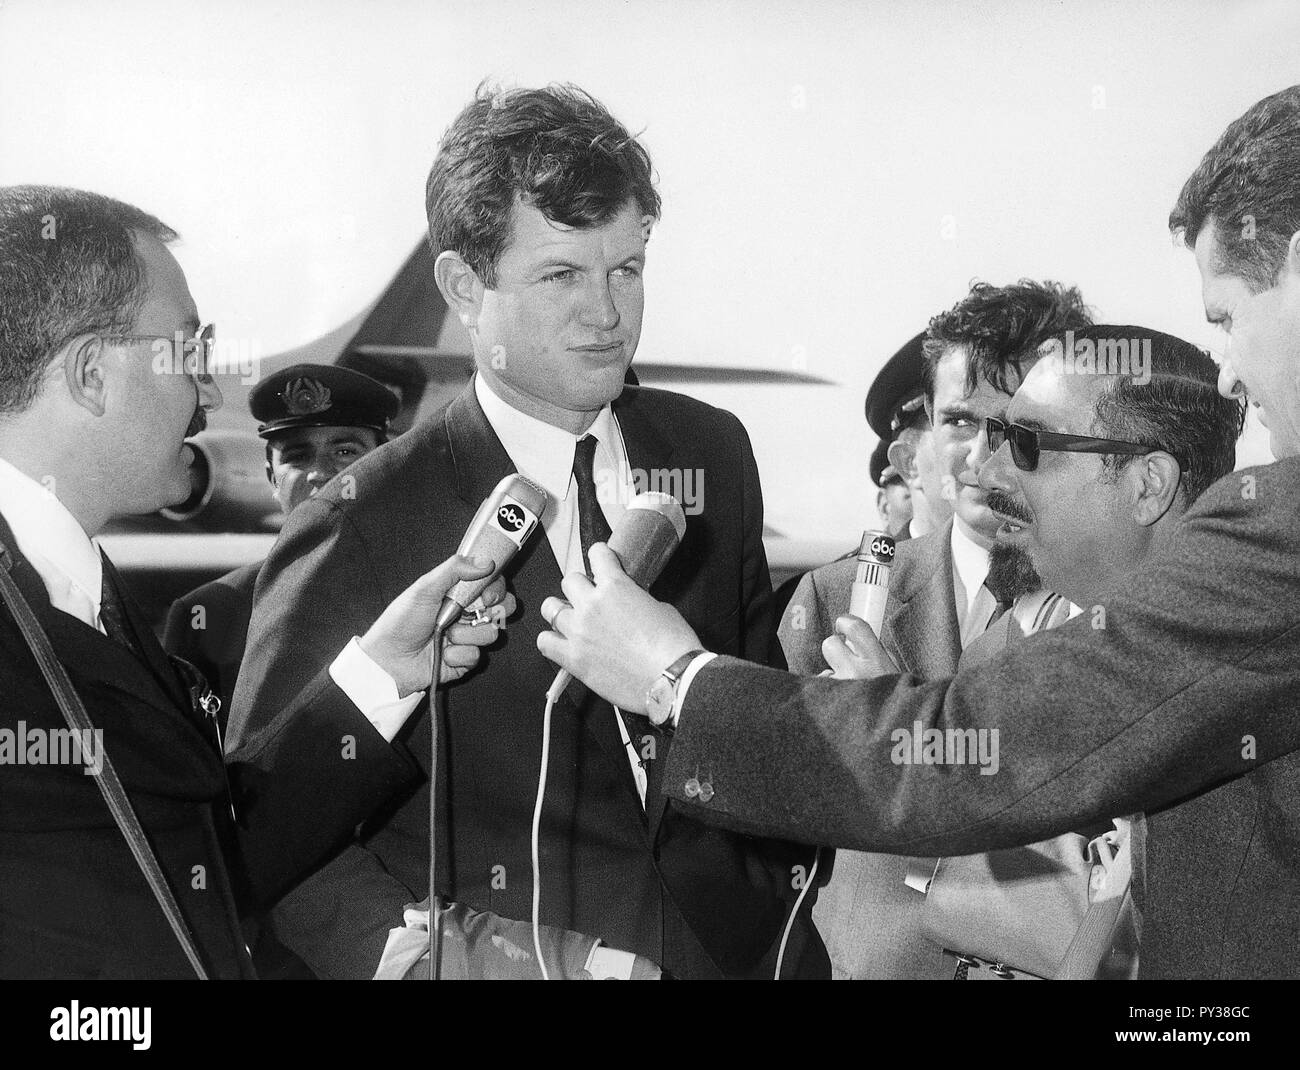 edward kennedy - Stock Image